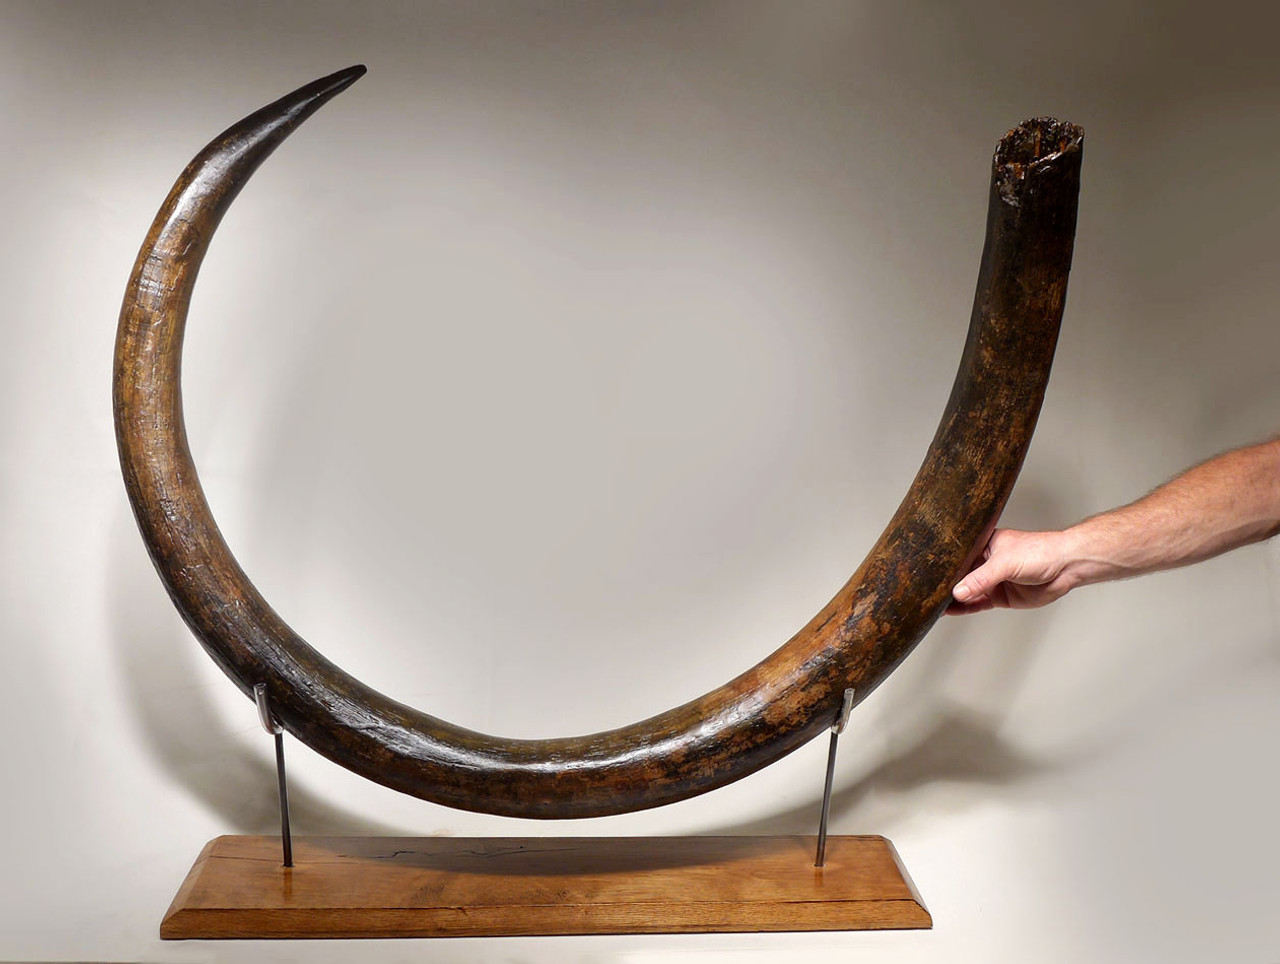 MT029 - OUR FINEST EVER CIRCULAR WOOLLY MAMMOTH TUSK FROM EUROPE EXCEEDING 7 FEET IN LENGTH